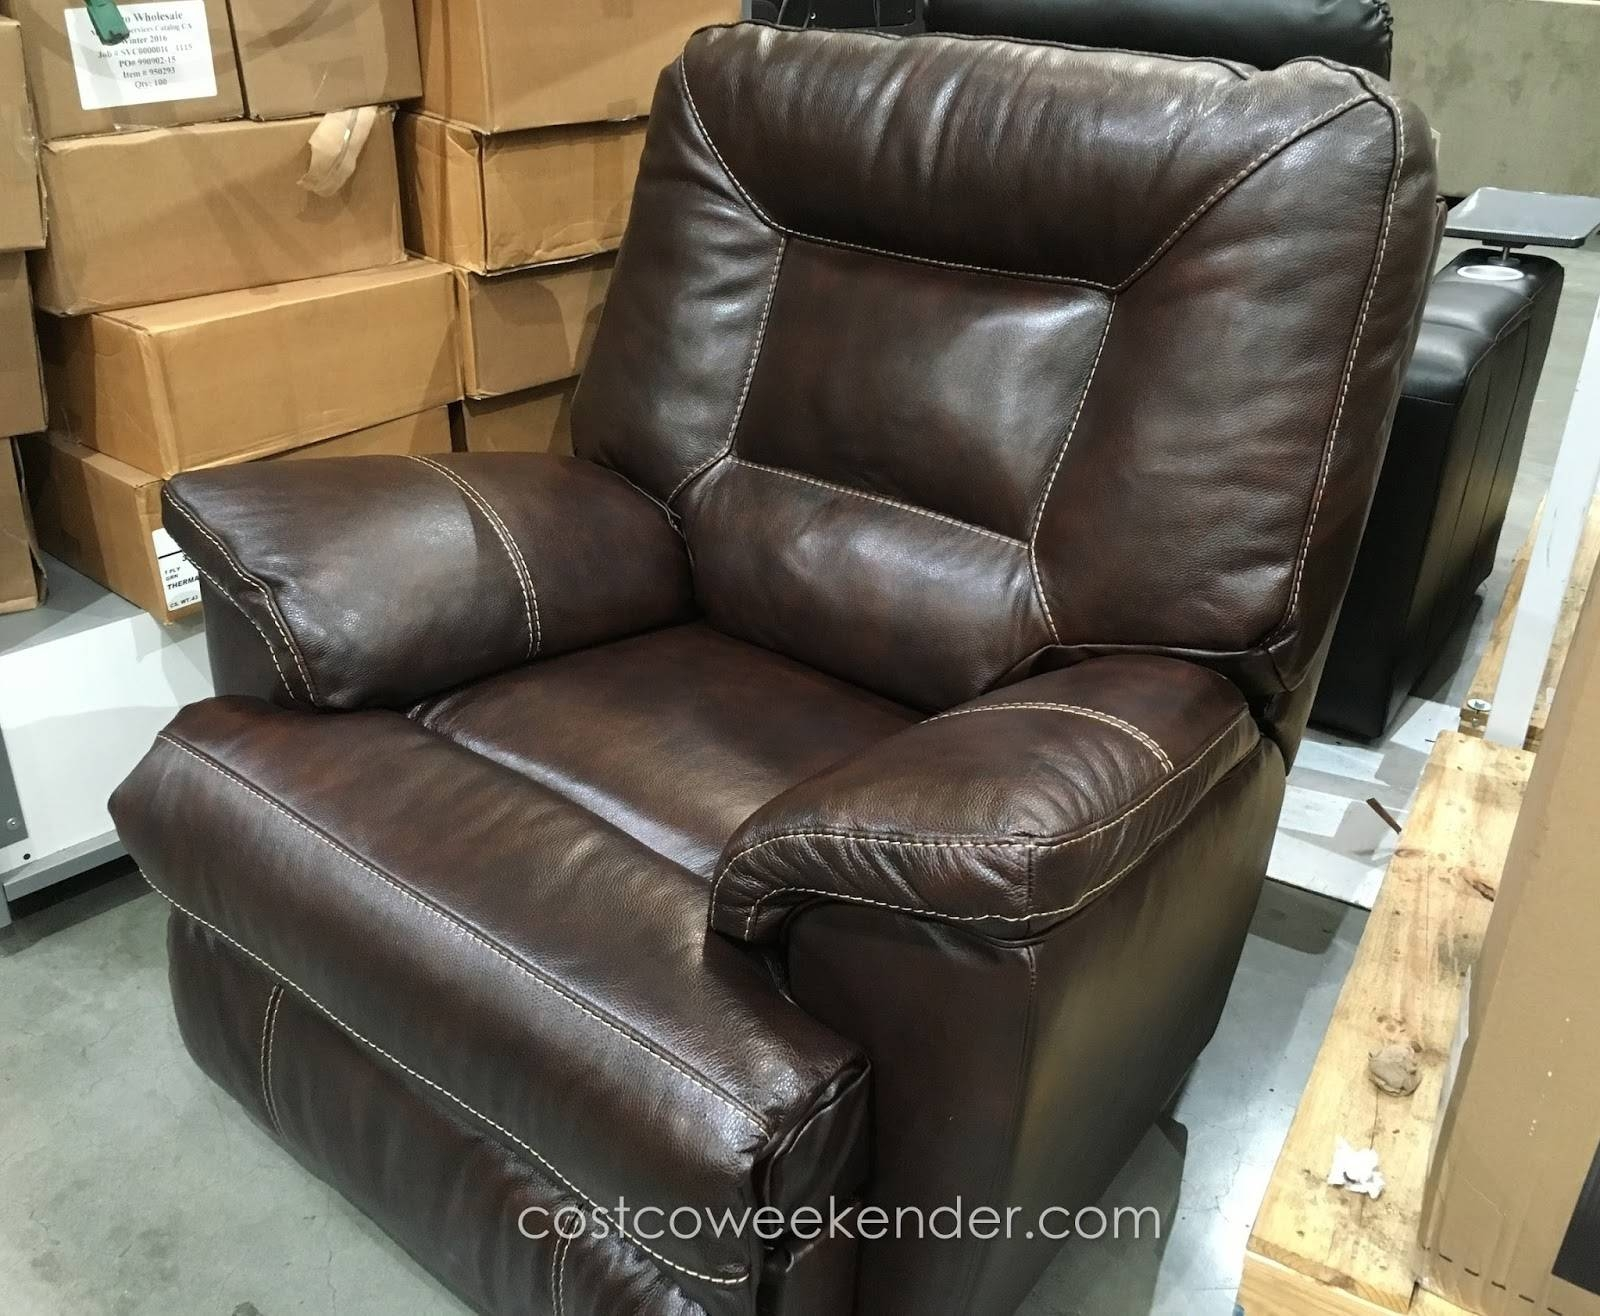 Furniture & Sofa: Enjoy Your Holiday With Costco Home Theater inside Berkline Sofas (Image 10 of 15)